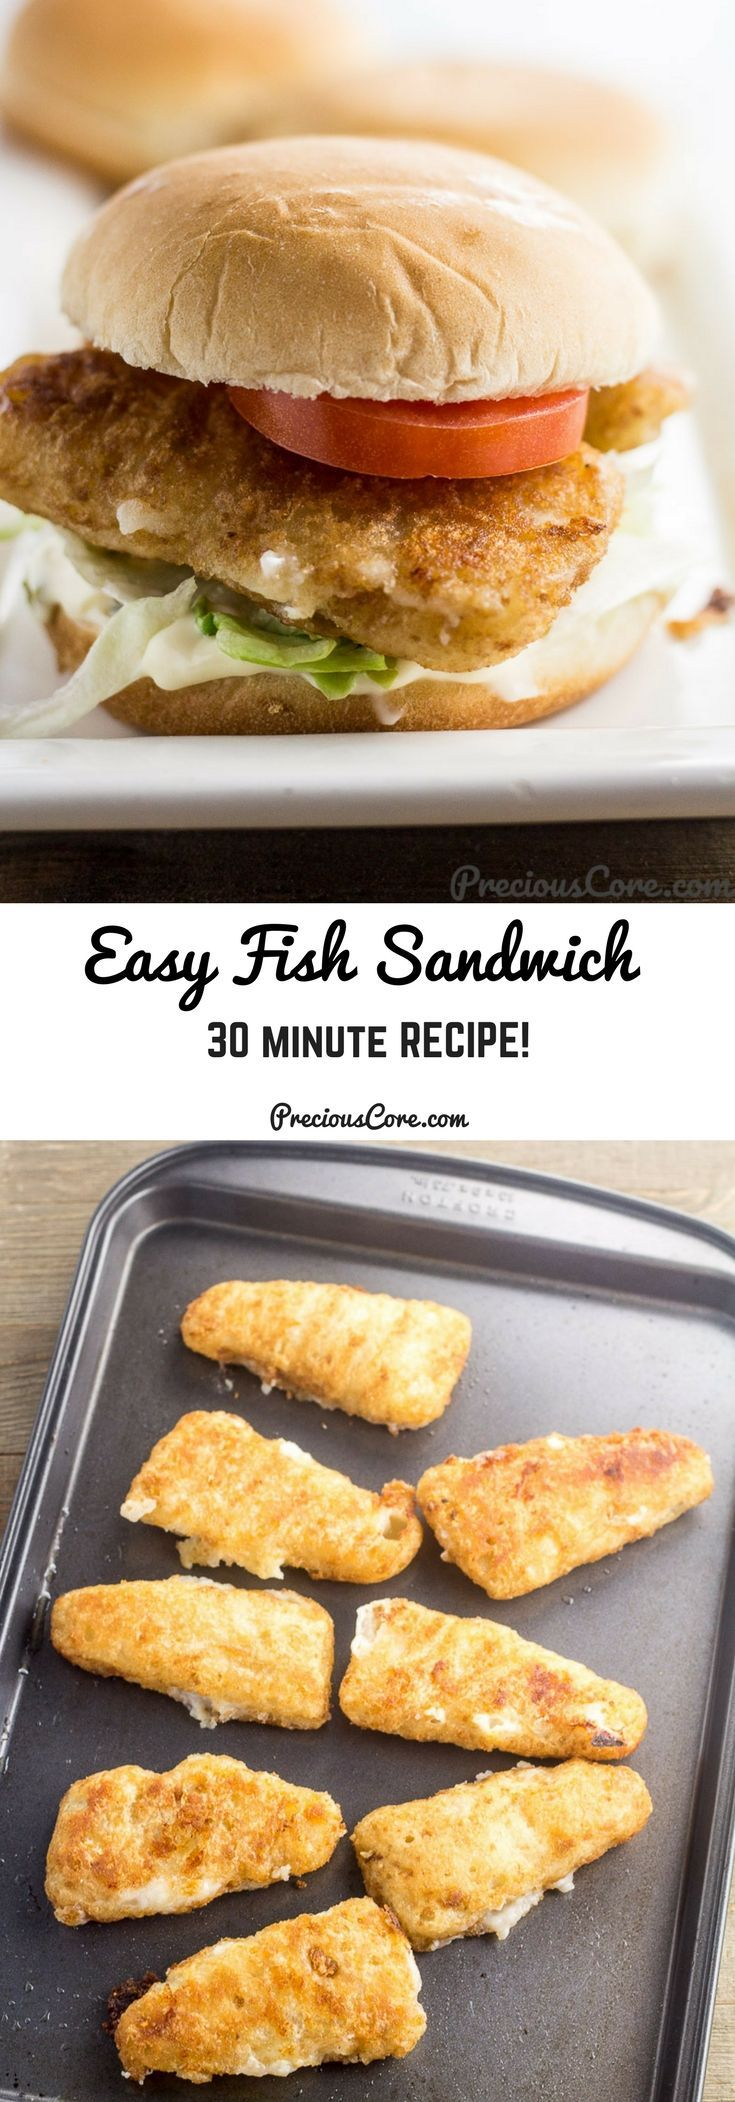 Easy fish sandwich which comes together in only about 30 minutes! Perfect for a quick weeknight meal. Get the easy recipe on Precious Core. #GortonsMealTime #TrustGortons #Ad